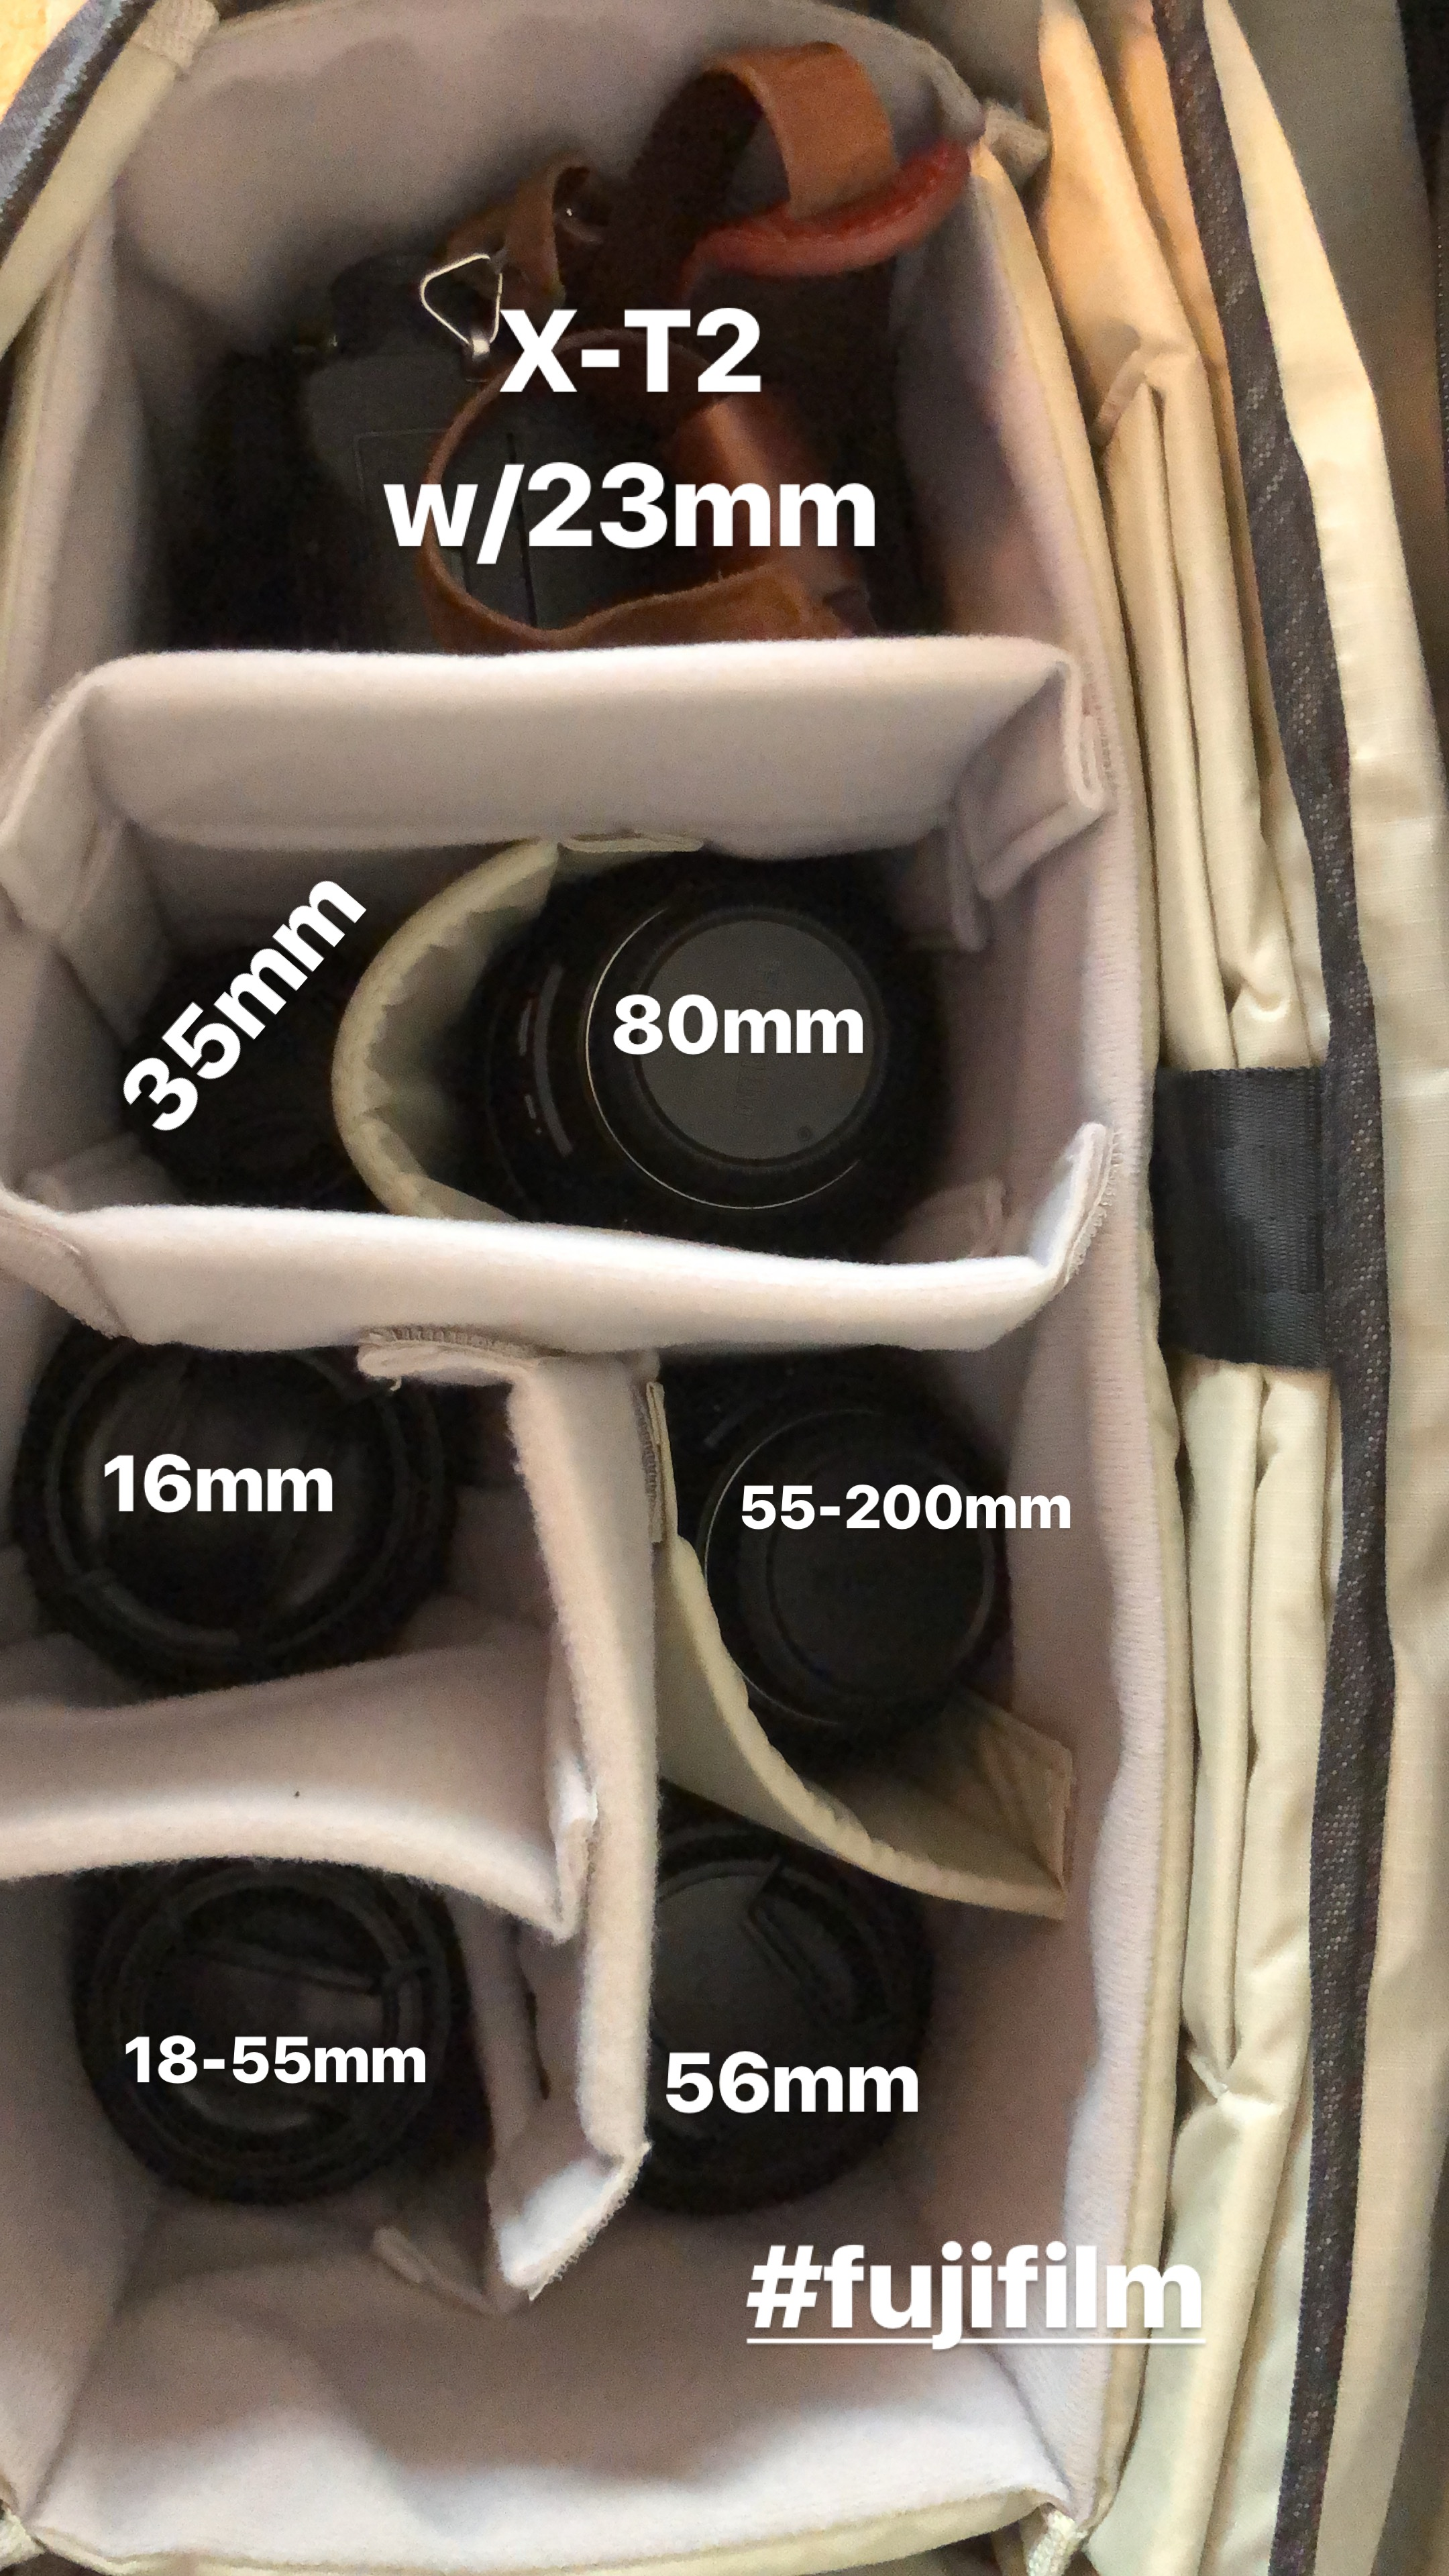 When using the DNA 13, I had to stack the smaller lenses.  With the 15, I could put them side by side.